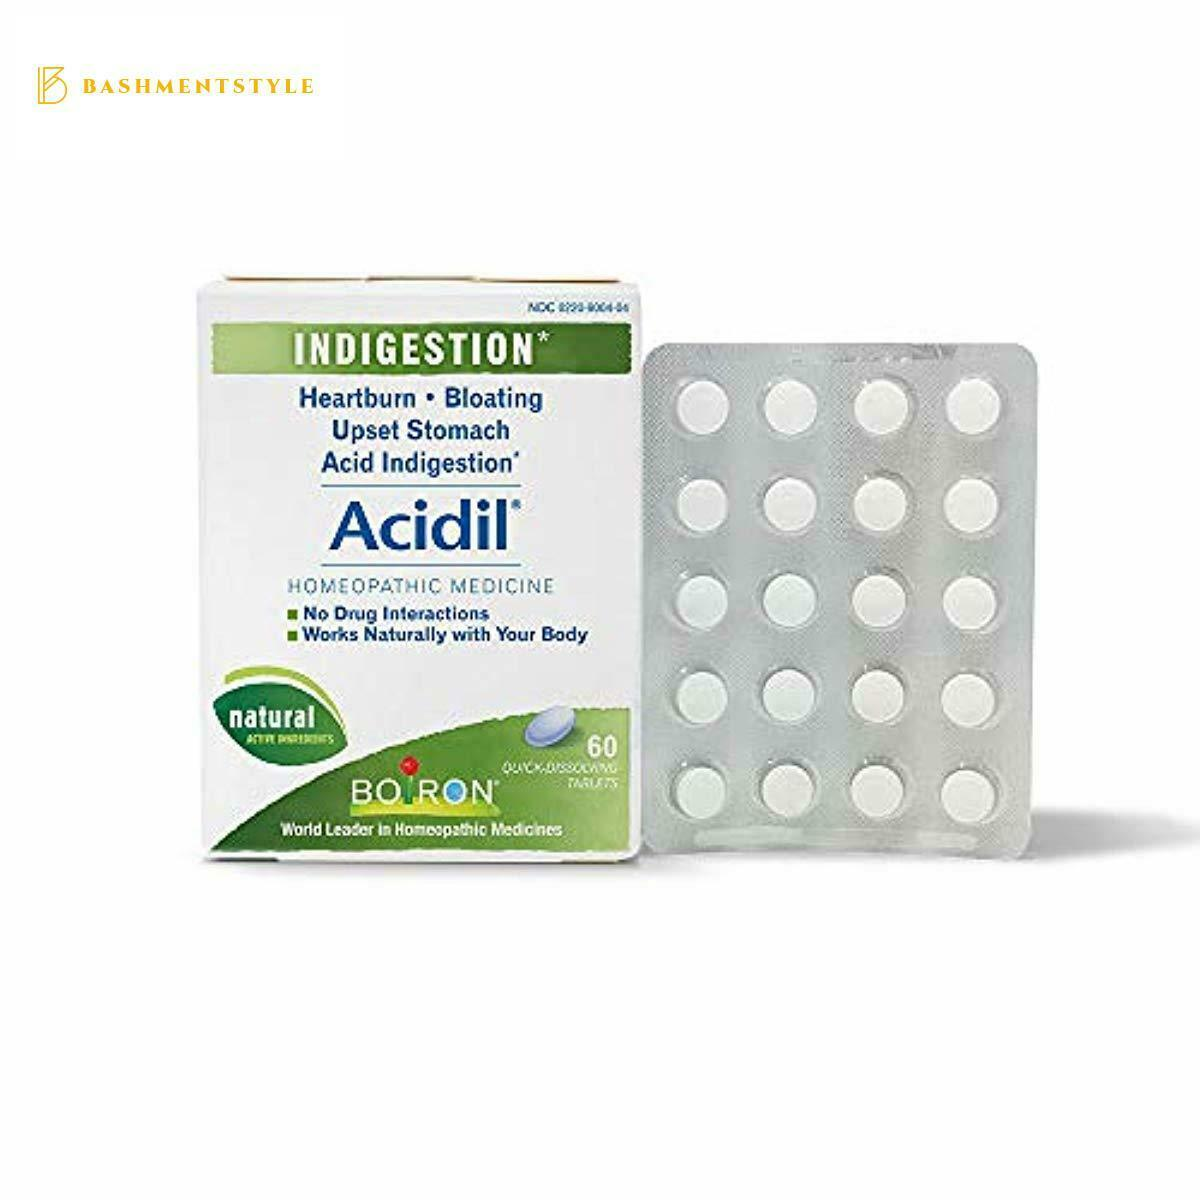 Boiron Acidil Indigestion Medicine for Heartburn and Acid Reflux 1